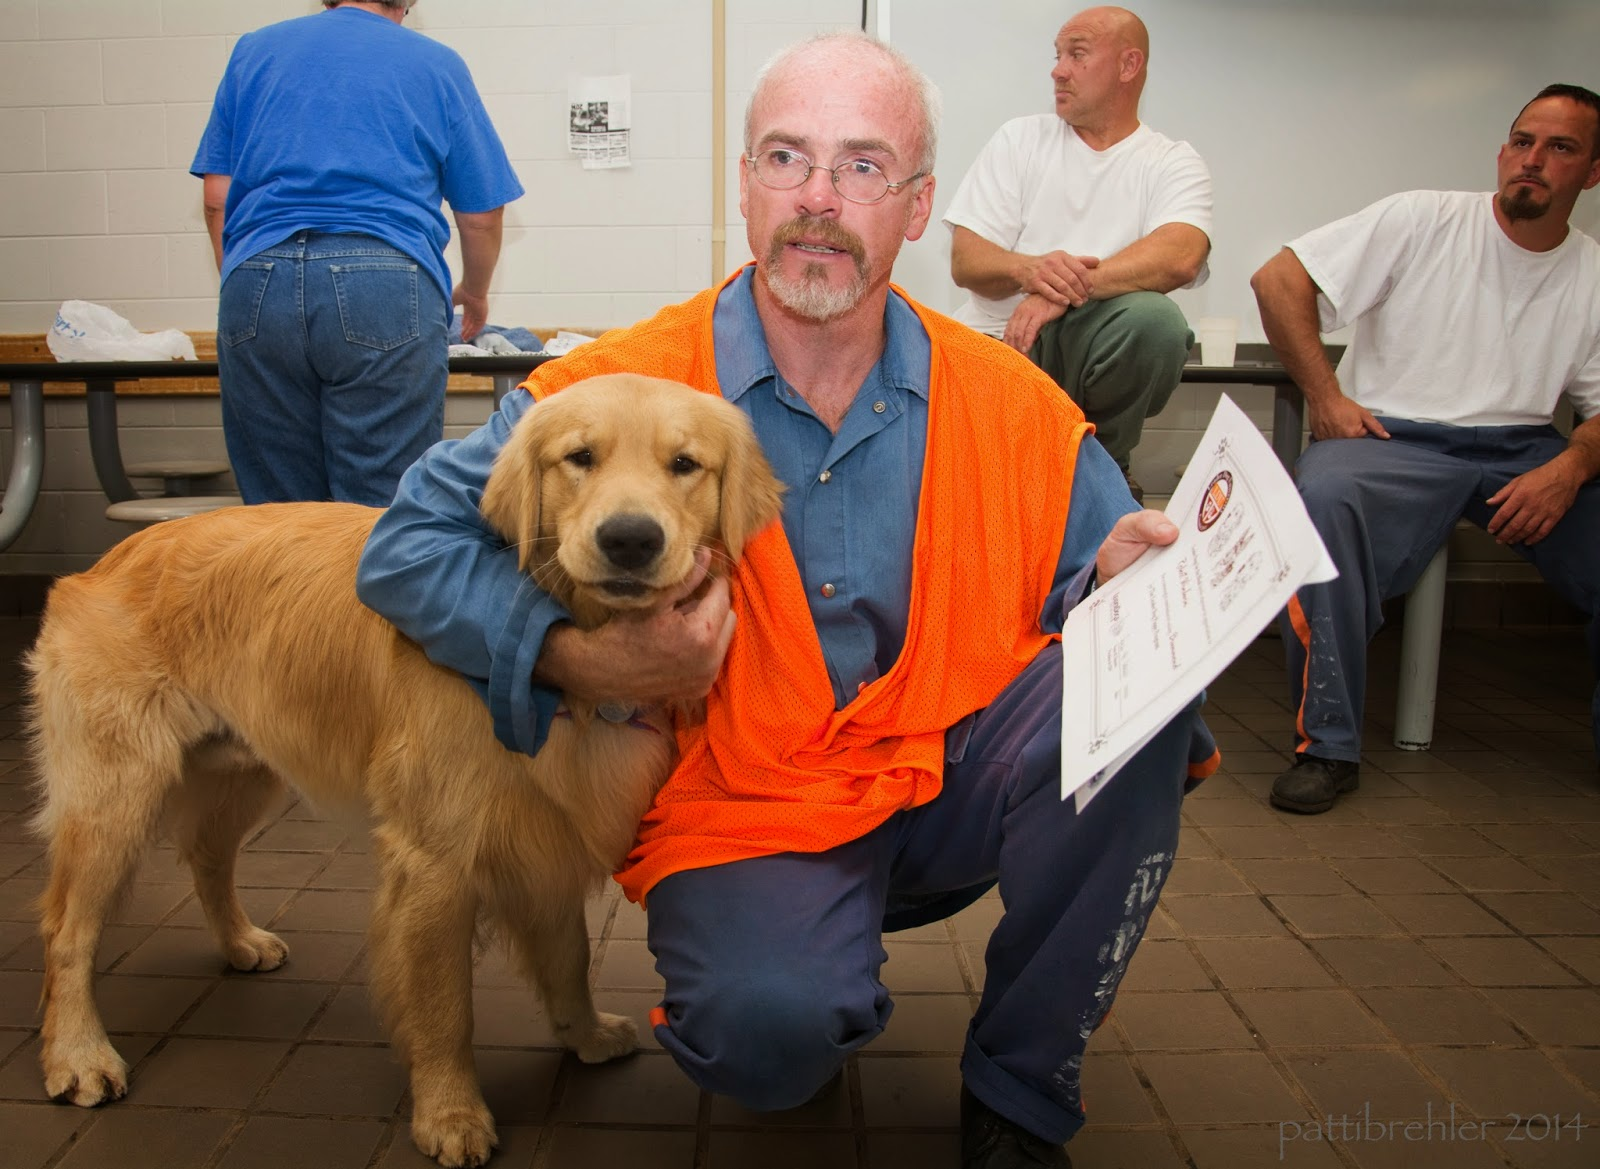 A man dressed in the priosn blue uniform and an orange vest is squatting down with a golden retriever on the left. The man's right arm is wrapped around the shoulders of the dog. The dog is standing and looking at the camera. The man is holding a certificate in his left hand. There is a woman and two men in the background.